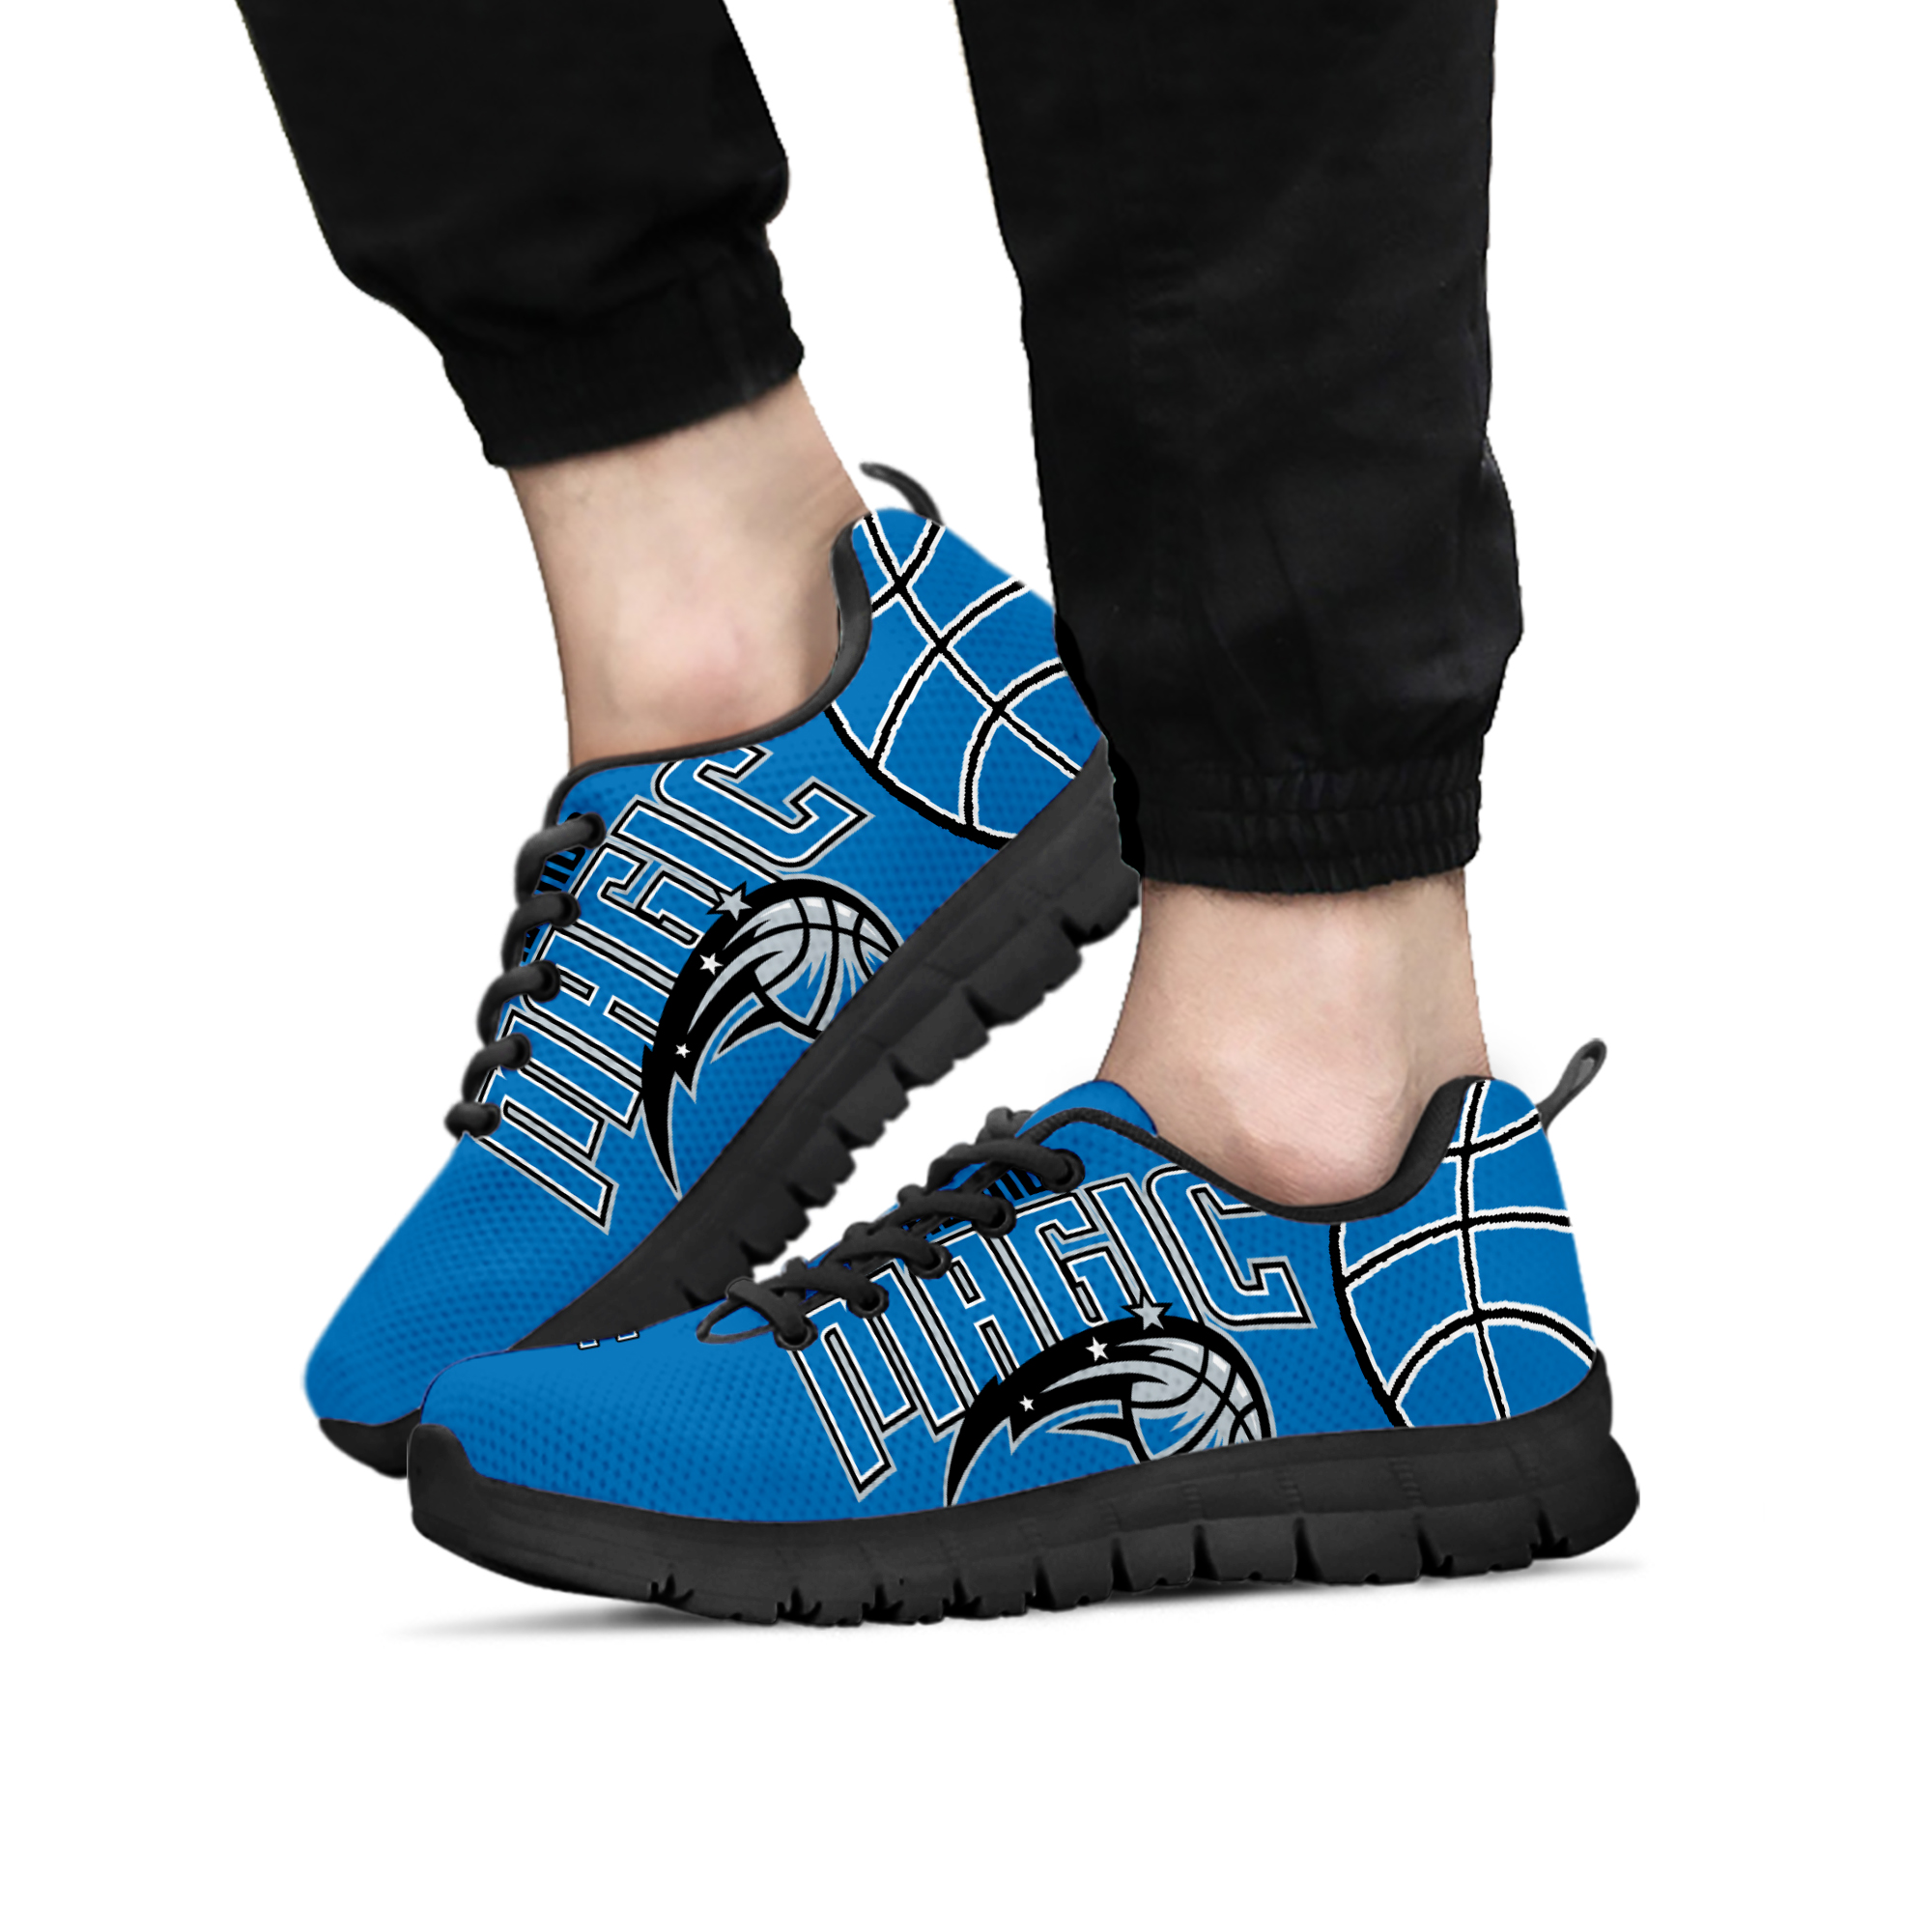 Orlando magic fan custom unofficial running shoes sneakers trainers -  ladies f967be0028